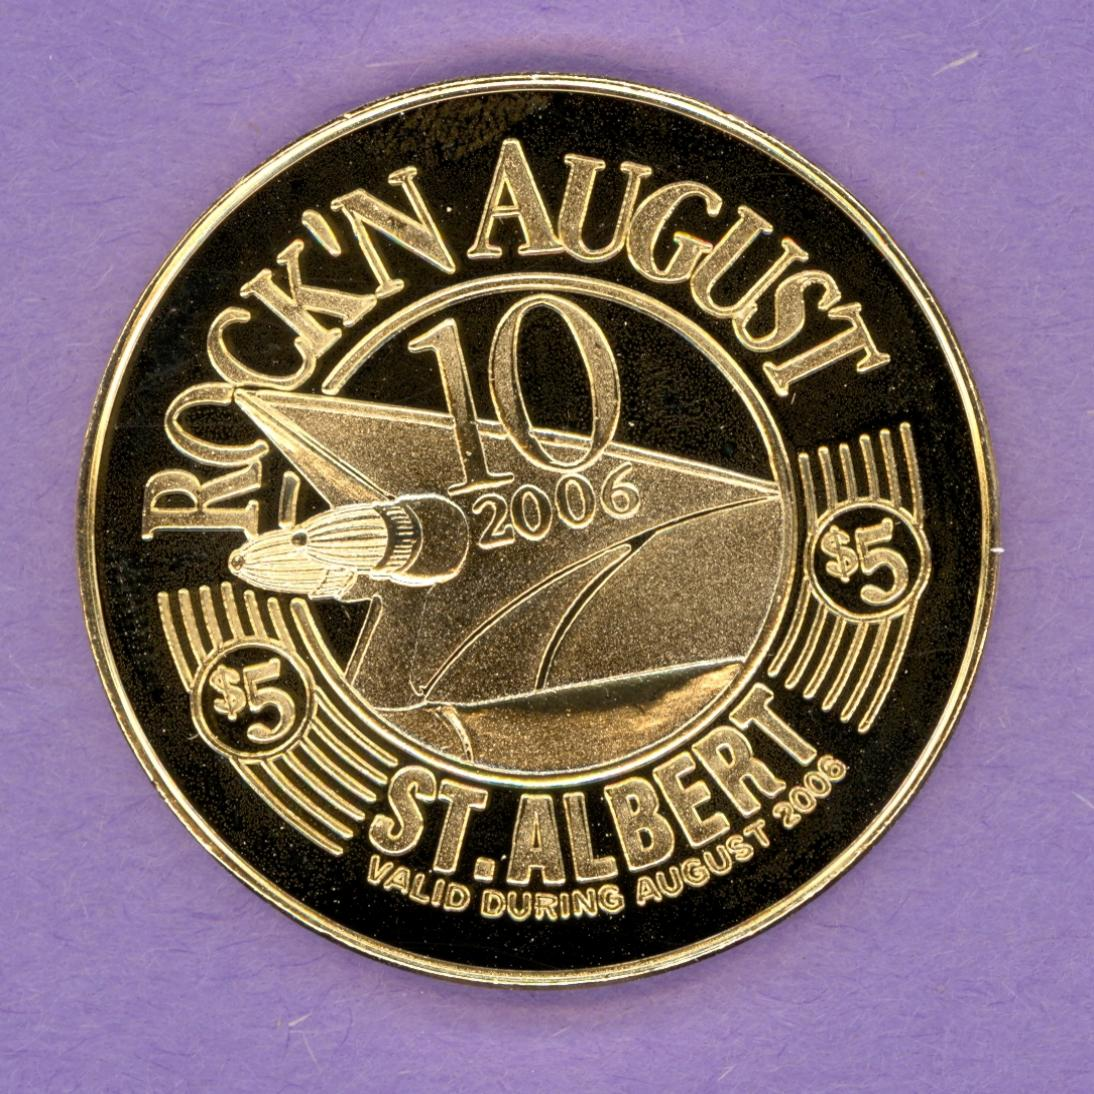 2006 St. Albert Alberta Trade Token Rock'n August Festival Cars Music Gold Plated